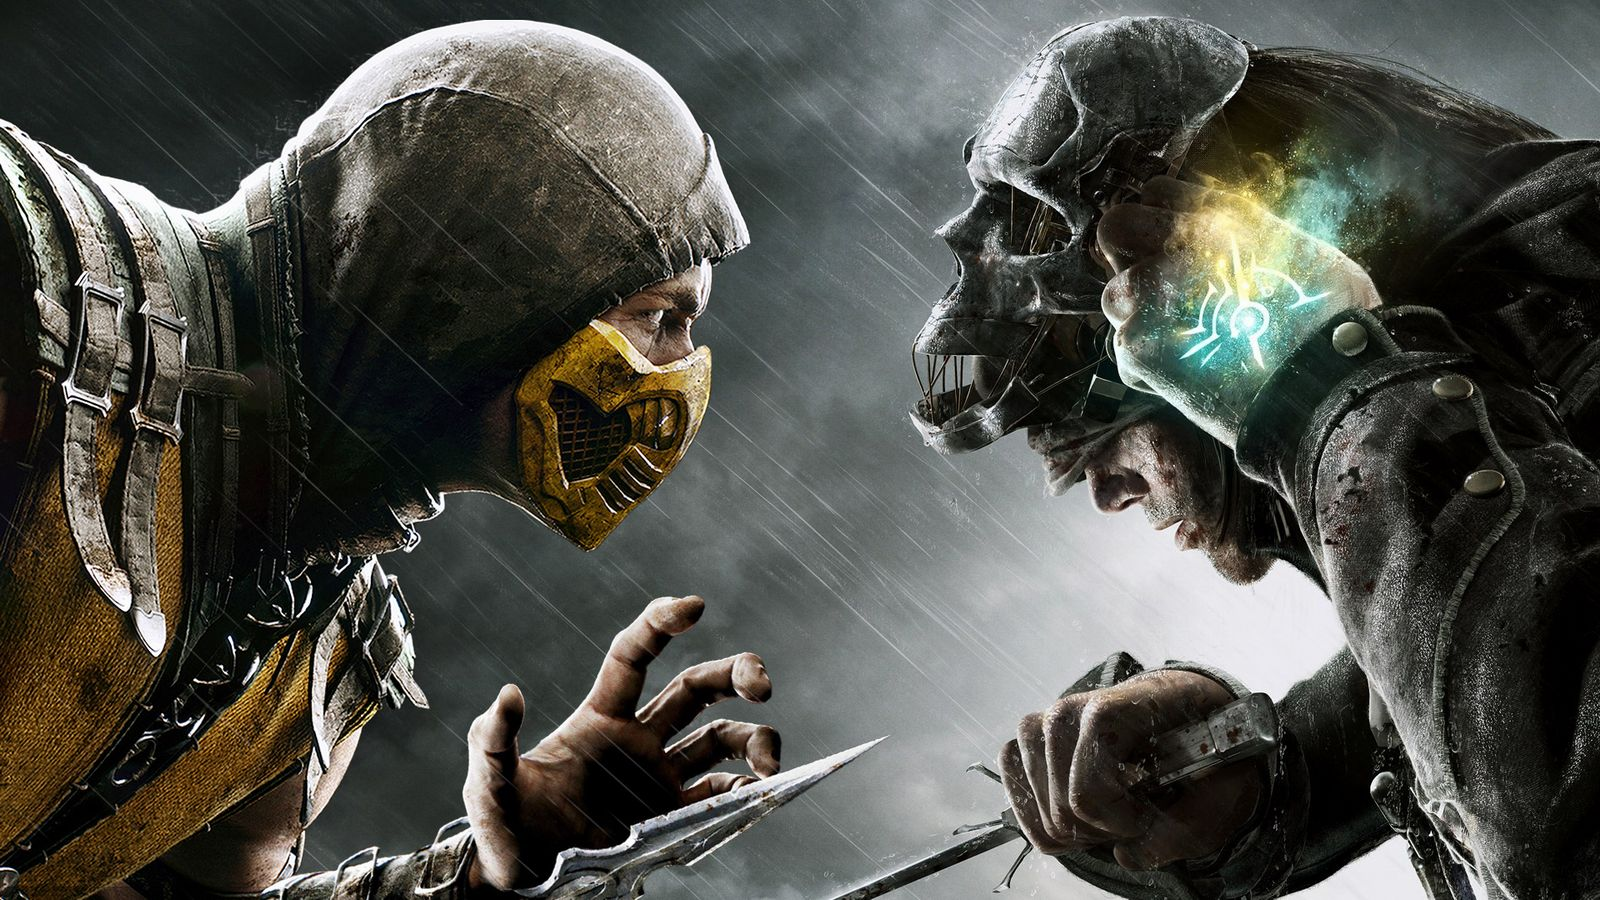 30 Mortal Kombat Wallpaper For Your Mobile Device 1600x900